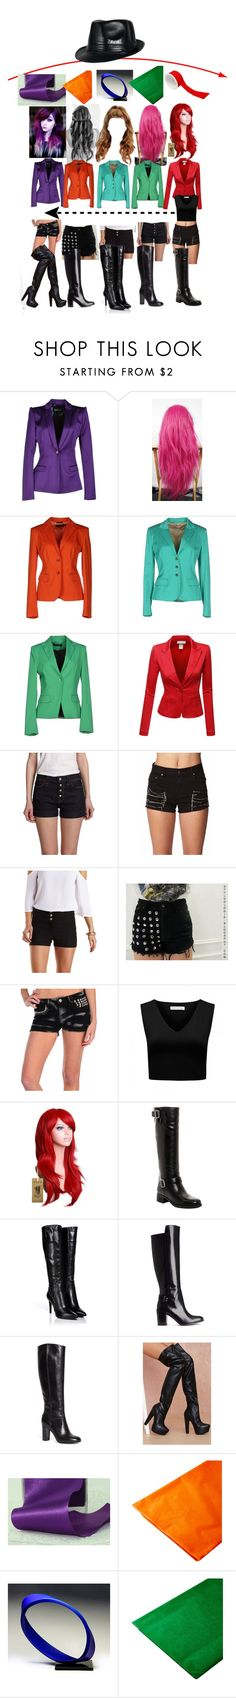 """""""Untitled #576"""" by creepypasta-music-anime-love ❤ liked on Polyvore featuring Just Cavalli, Daniele Alessandrini, Coccapani, GUESS by Marciano, Doublju, 7 For All Mankind, Forever 21, Charlotte Russe, Levi's and Vintage Havana"""